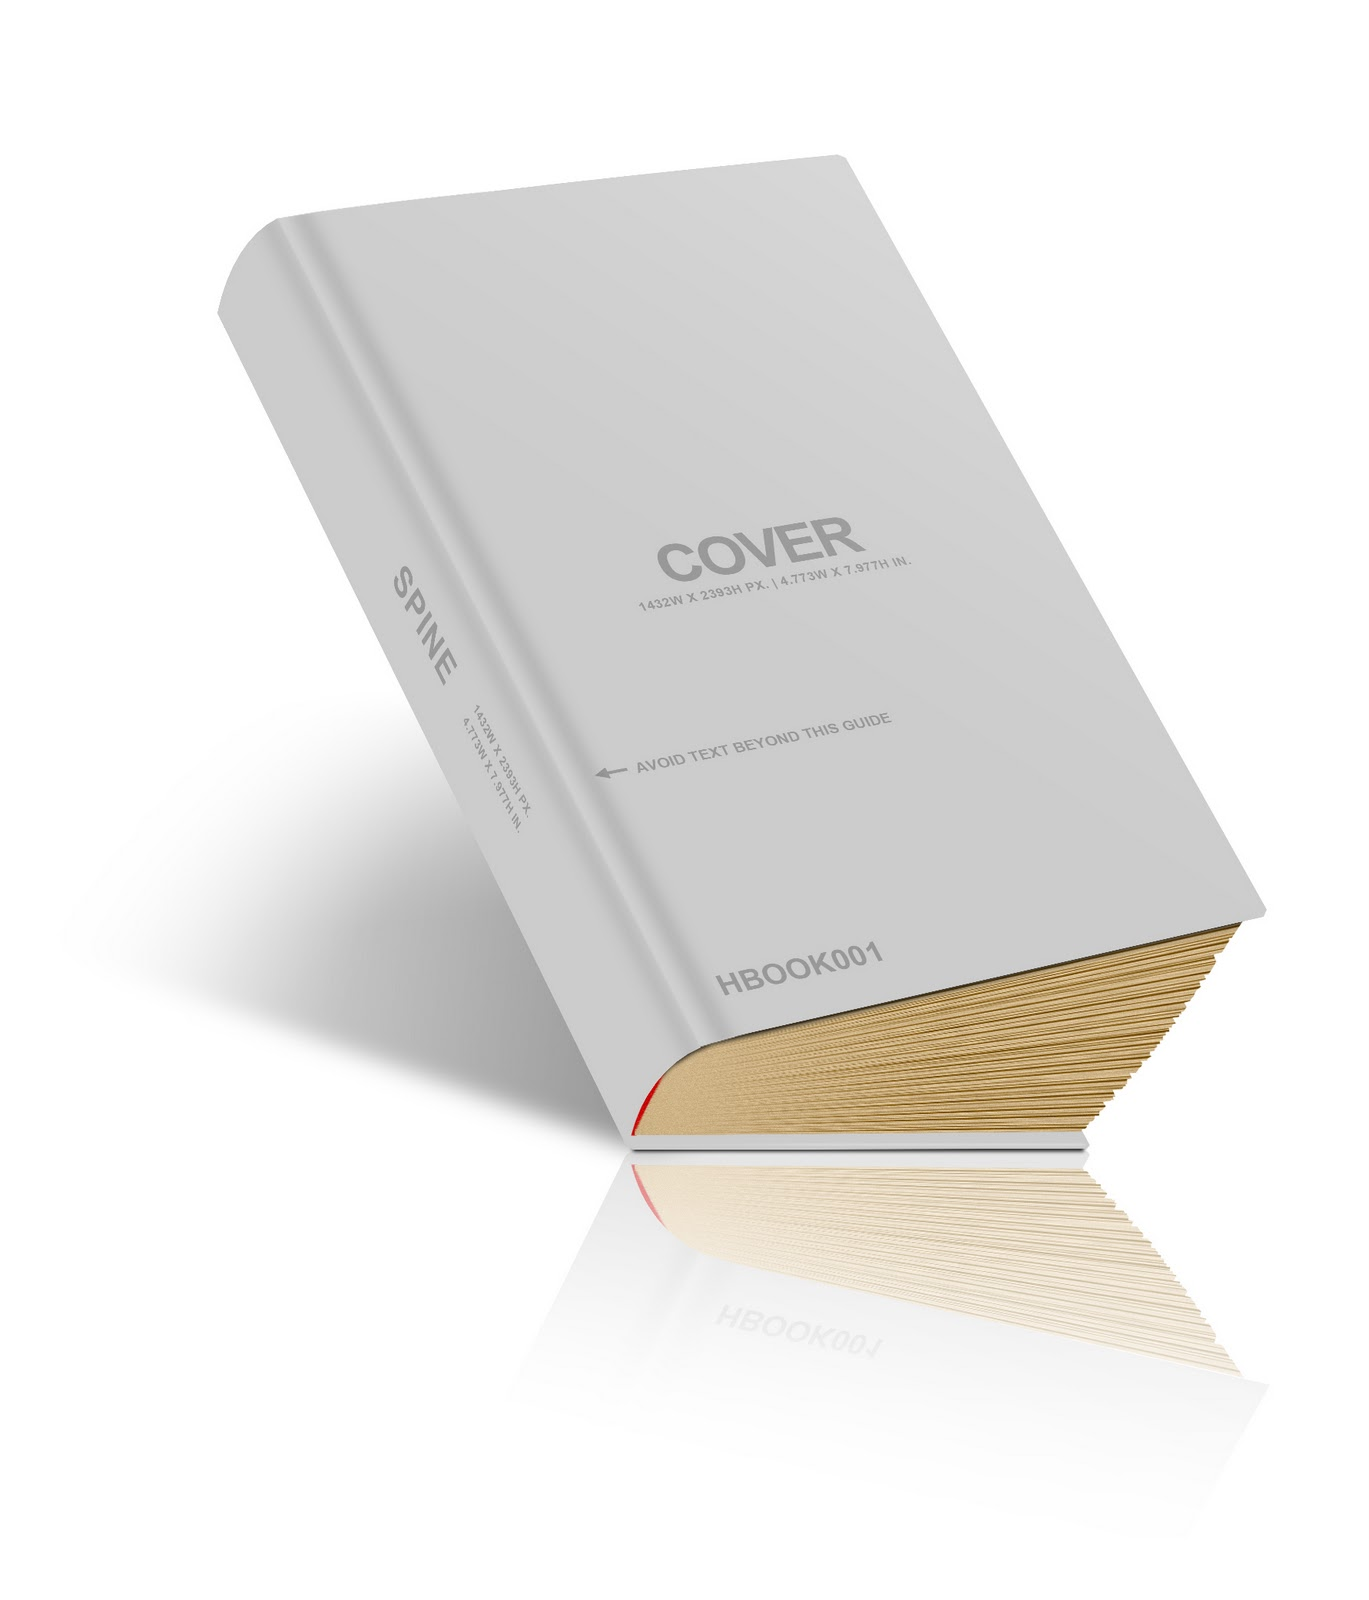 Ebook Cover Template : Velocity ebook covers hardcover templates